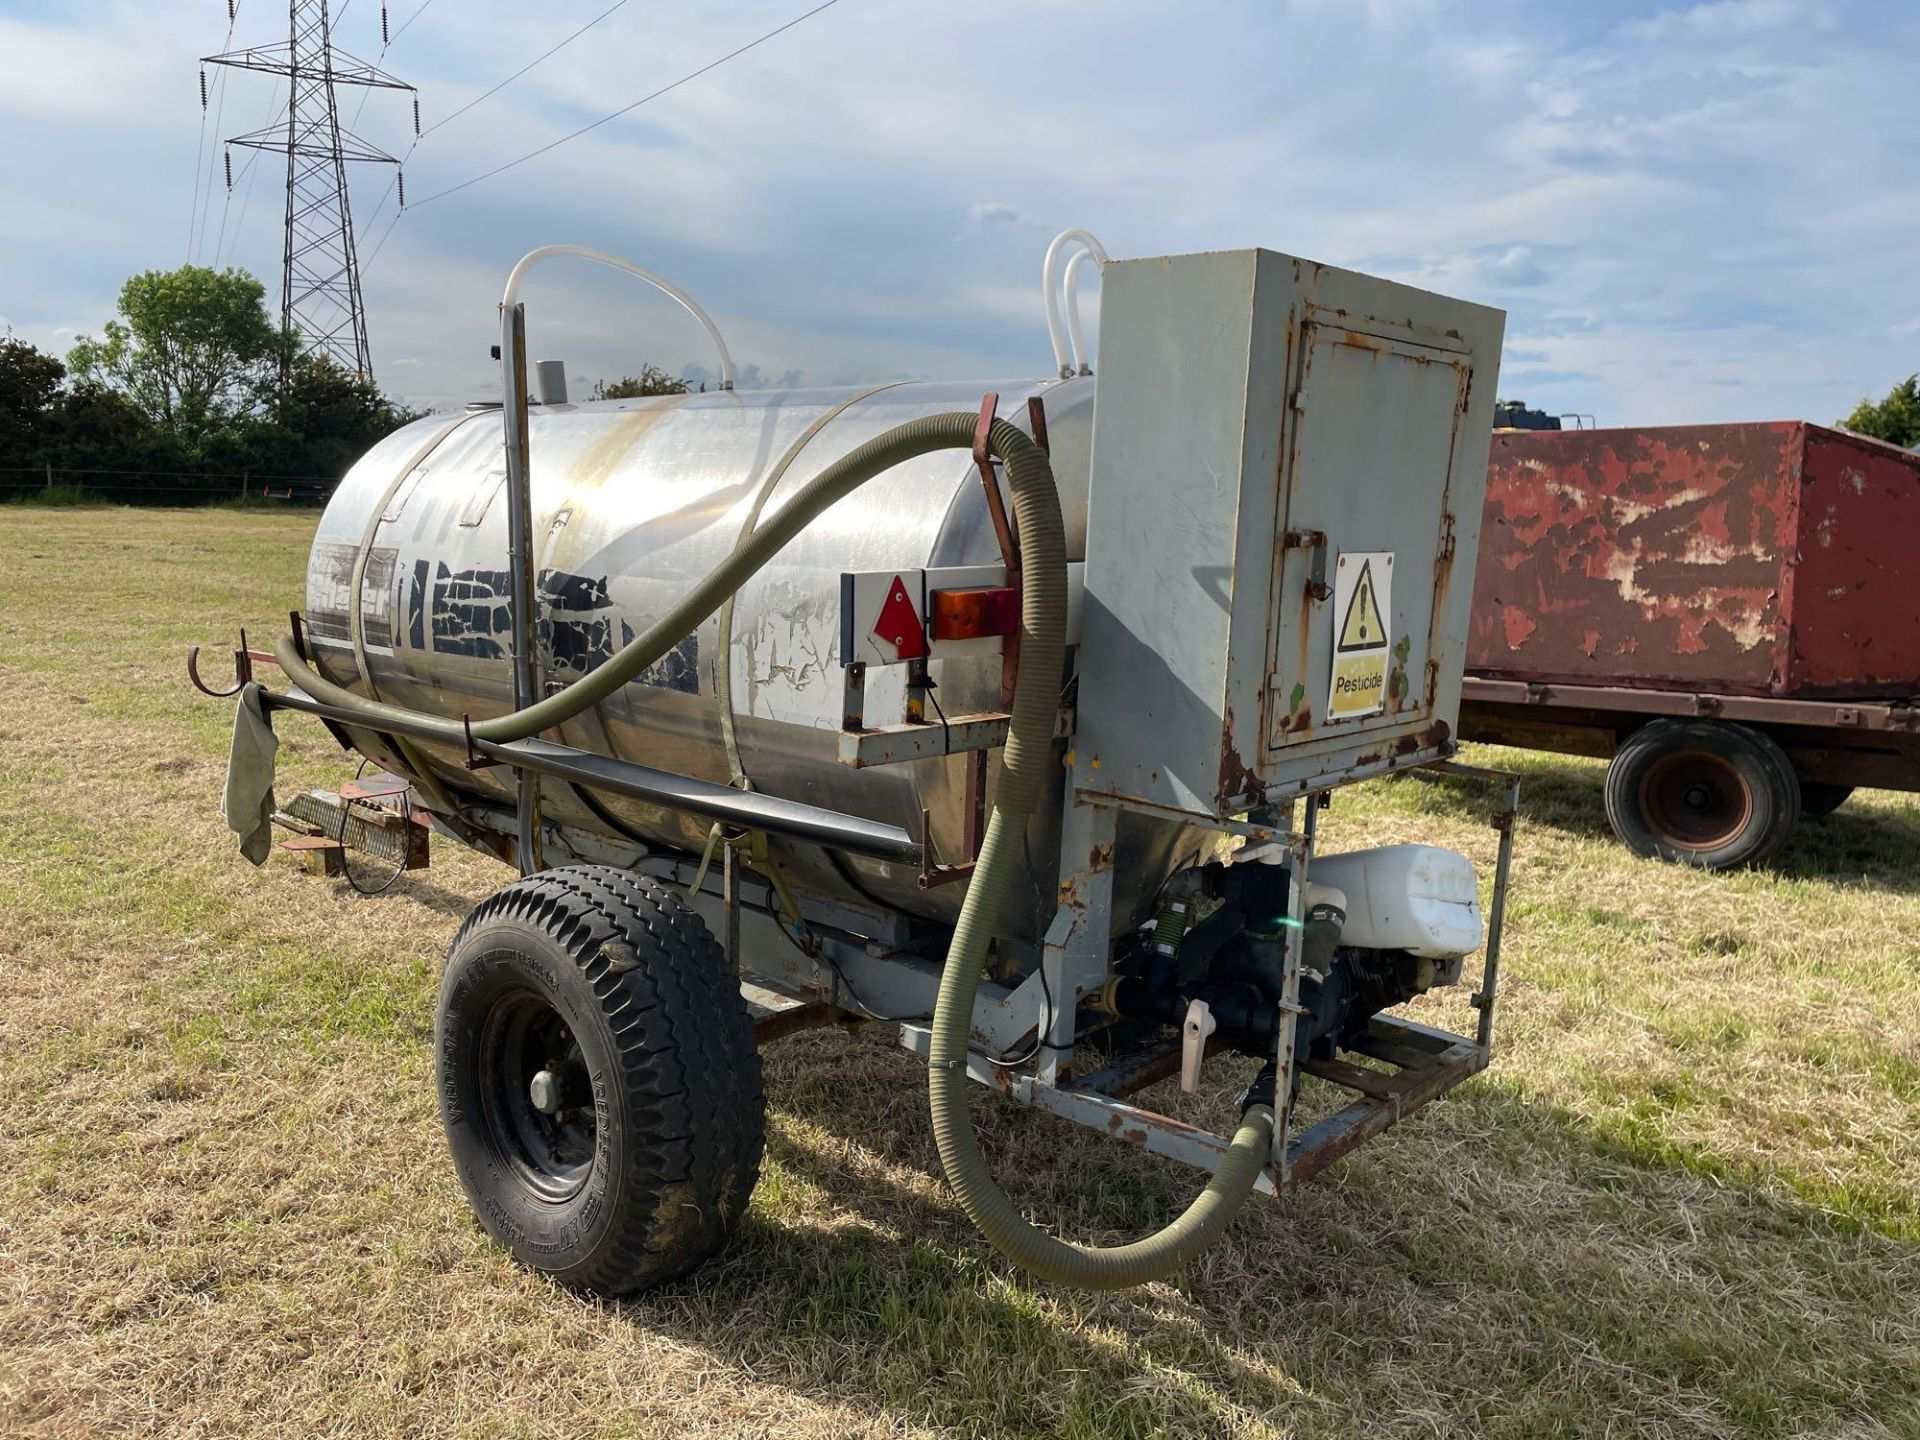 Chafer stainless steel tank, trailed single axle on 11.5/80-15.3 wheels and tyres with Honda pump - Image 3 of 4